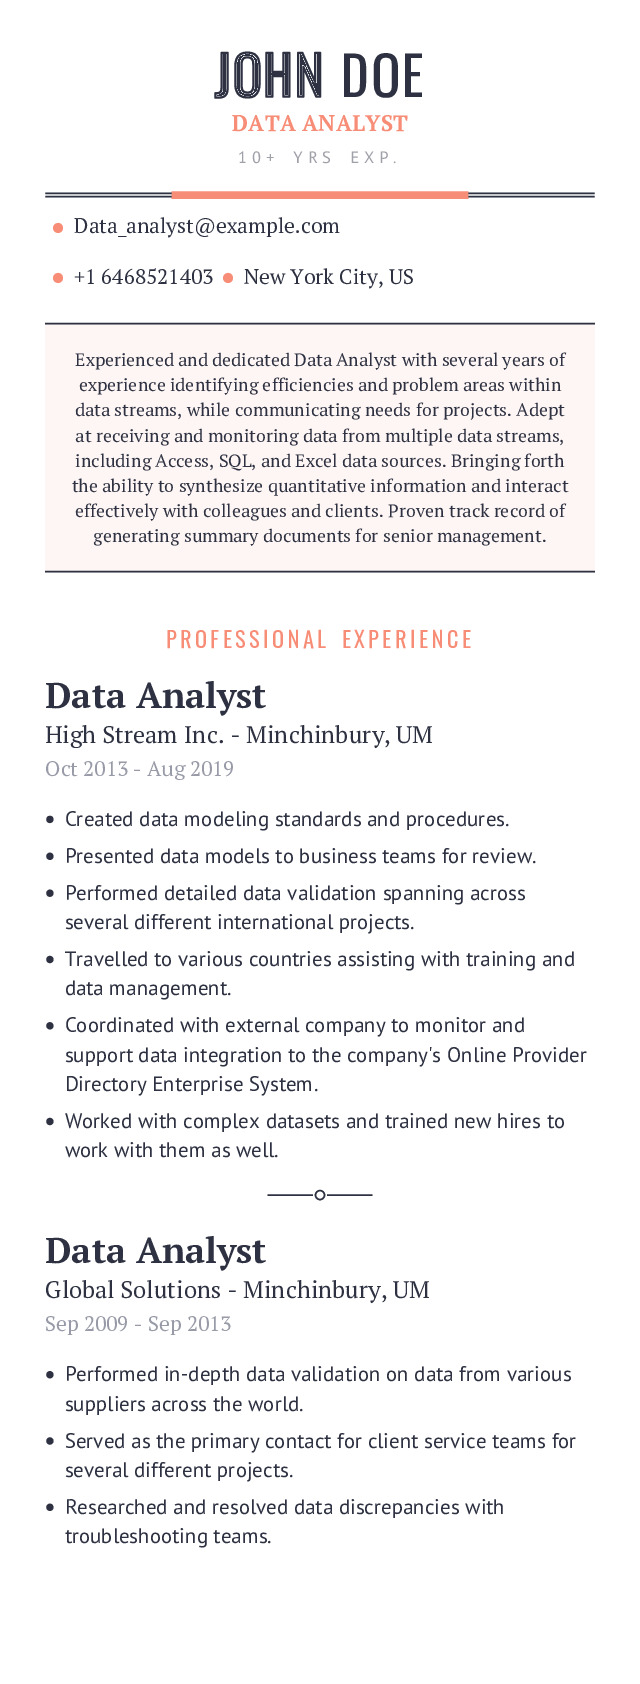 Data Analyst Mobile Resume Example